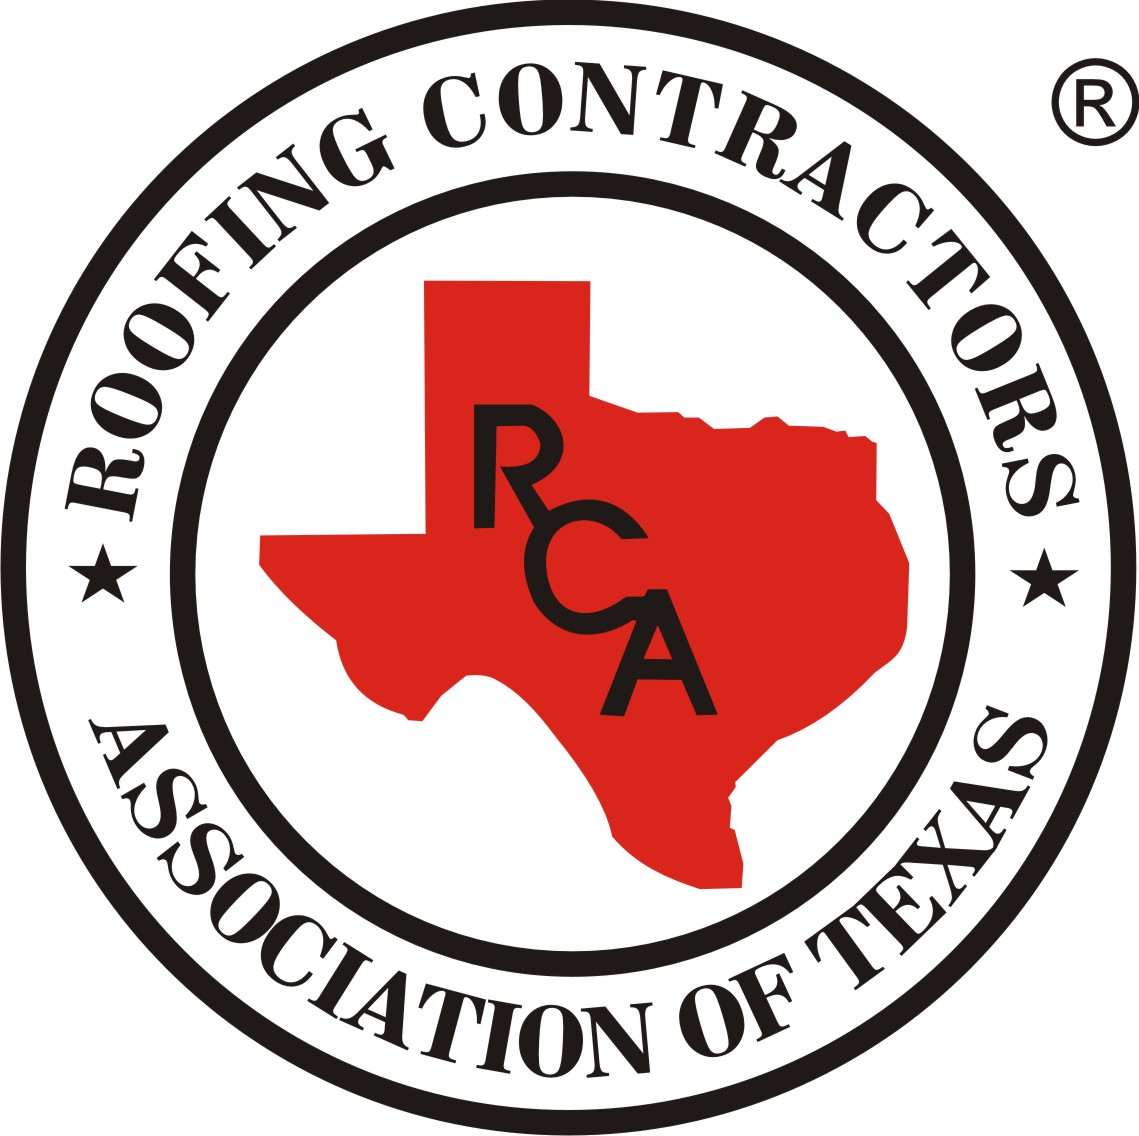 Alliance Roofing Houston - Texas Roofing Contractors Association